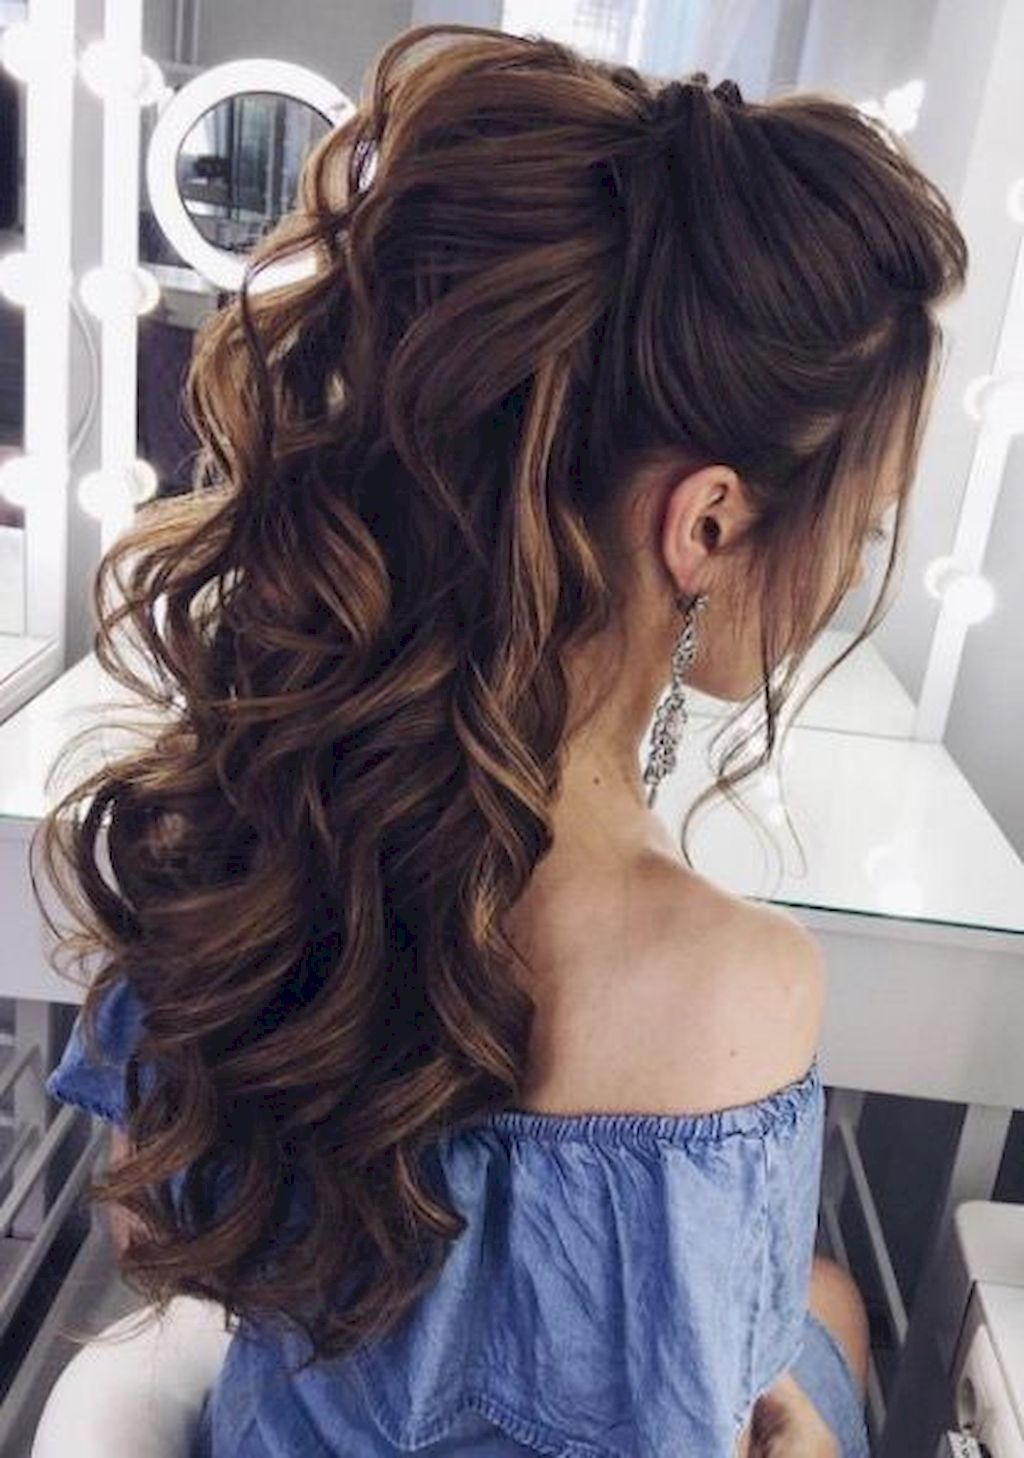 Wedding Hairstyles For Long Hair 72 Bridal Wedding Hairstyles For Long Hair That Will Inspire